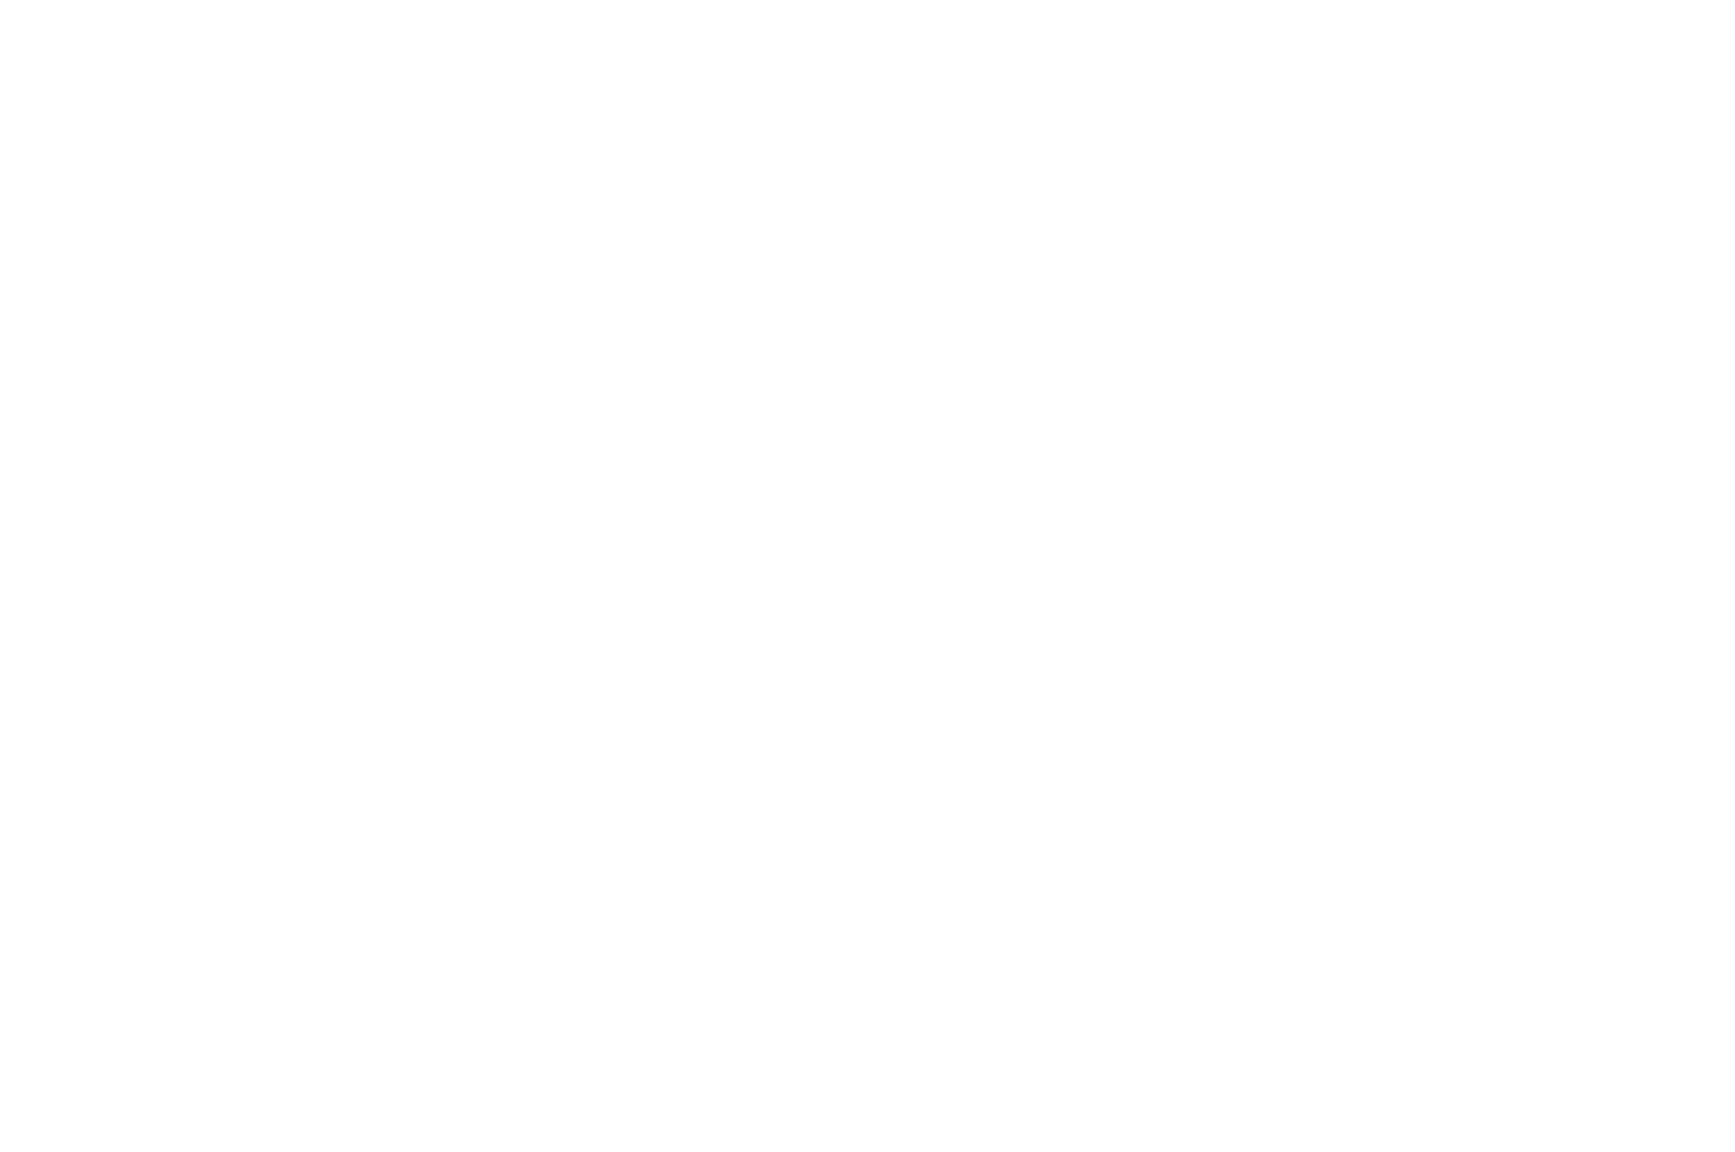 OFFICIAL SELECTION - LOVEMYROOMIE - 2018 HIP HOP FILM FESTIVAL.png